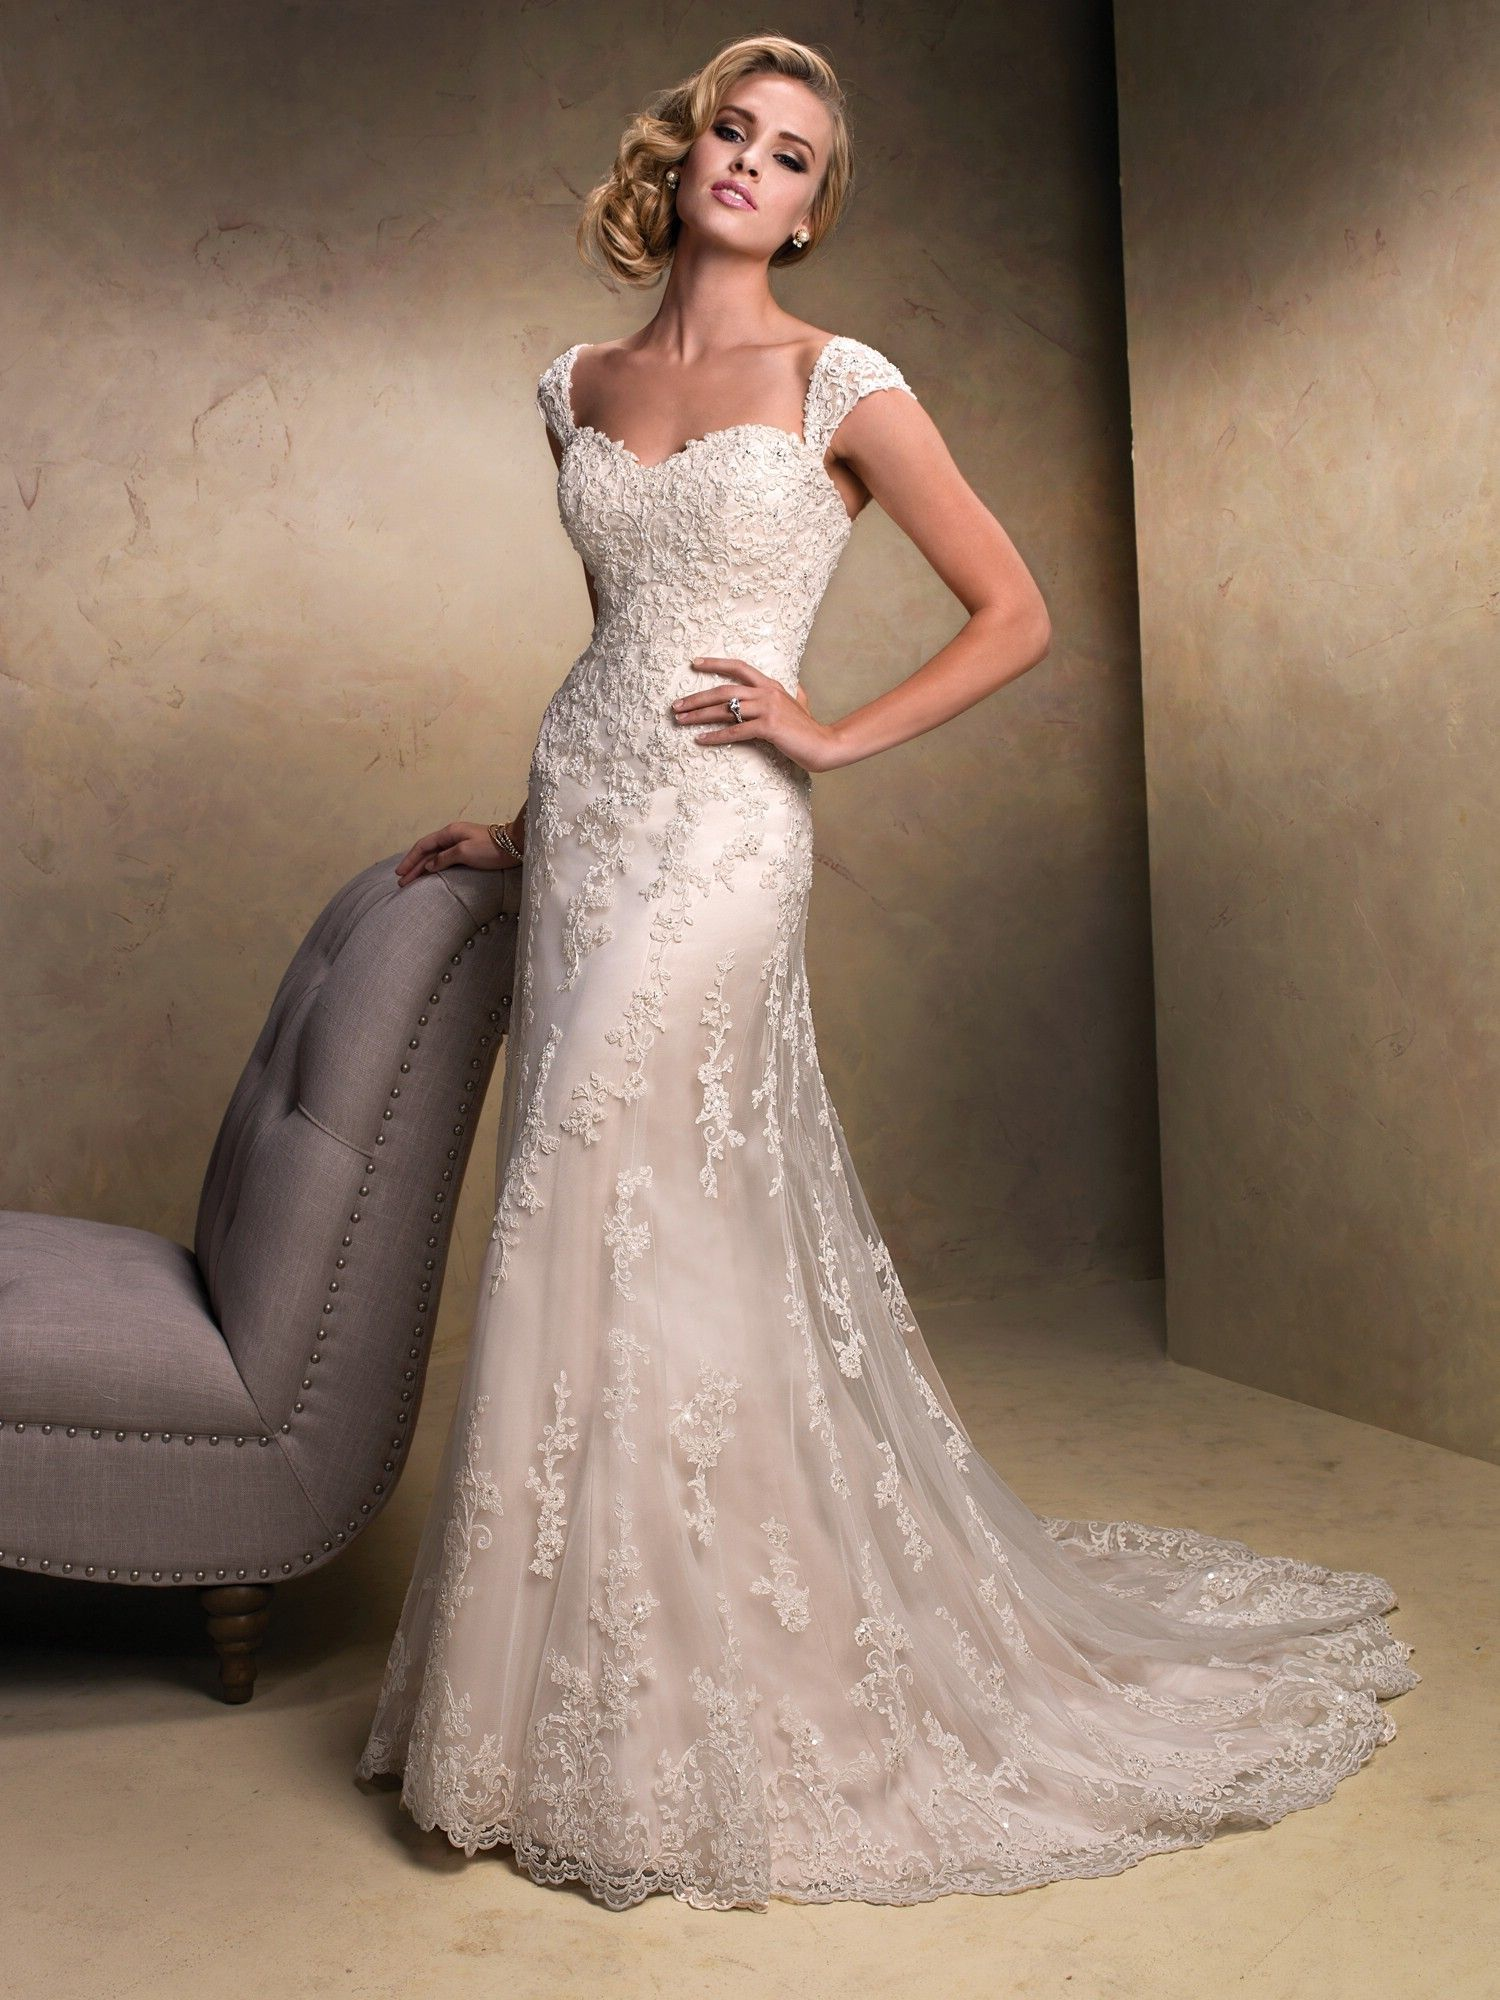 Maggie sottero wedding dresses style emma 1353313533cs 2013 maggie sottero wedding dresses style emma 1353313533cs 2013 maggie sottero dress emma 13533 ombrellifo Image collections